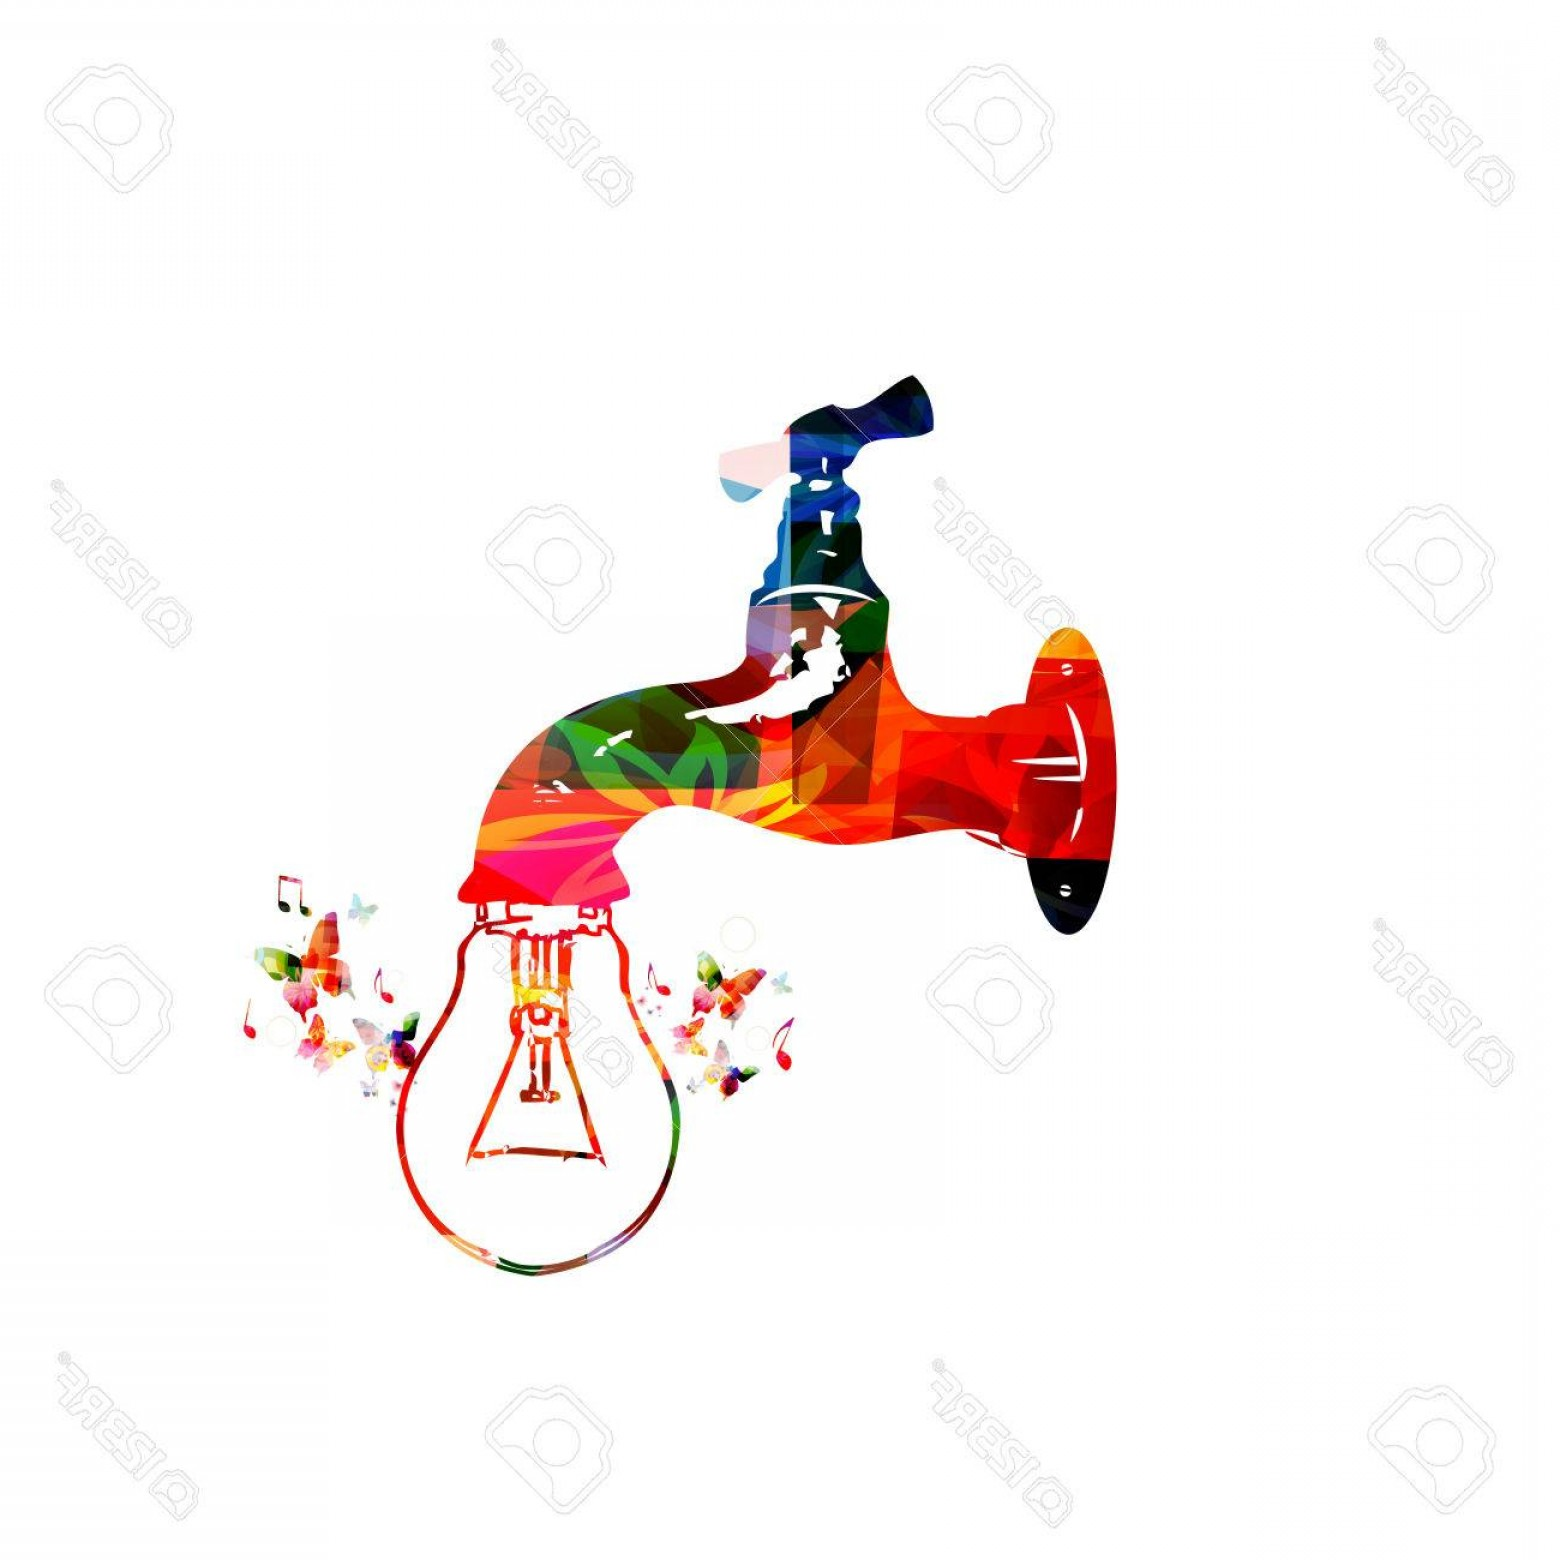 Creative Light Bulb Vector: Photostock Vector Colorful Dripping Tap With Light Bulb Vector Illustration Design For Creative Thinking Creativity In